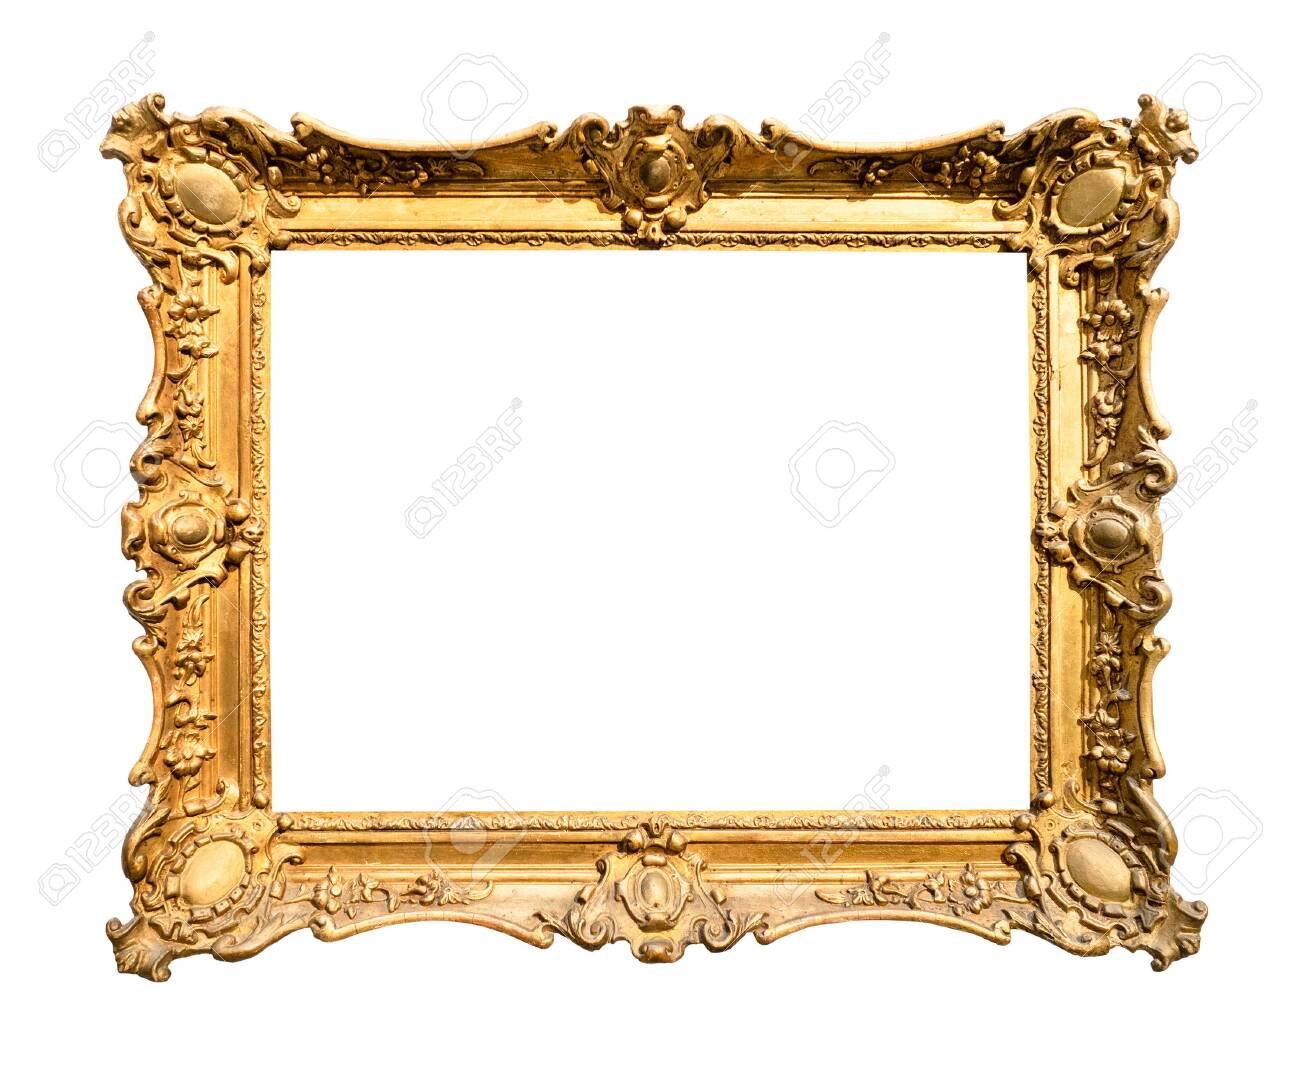 vintage wide decorated baroque painting frame painted in gold color cutout on white background - 129017713